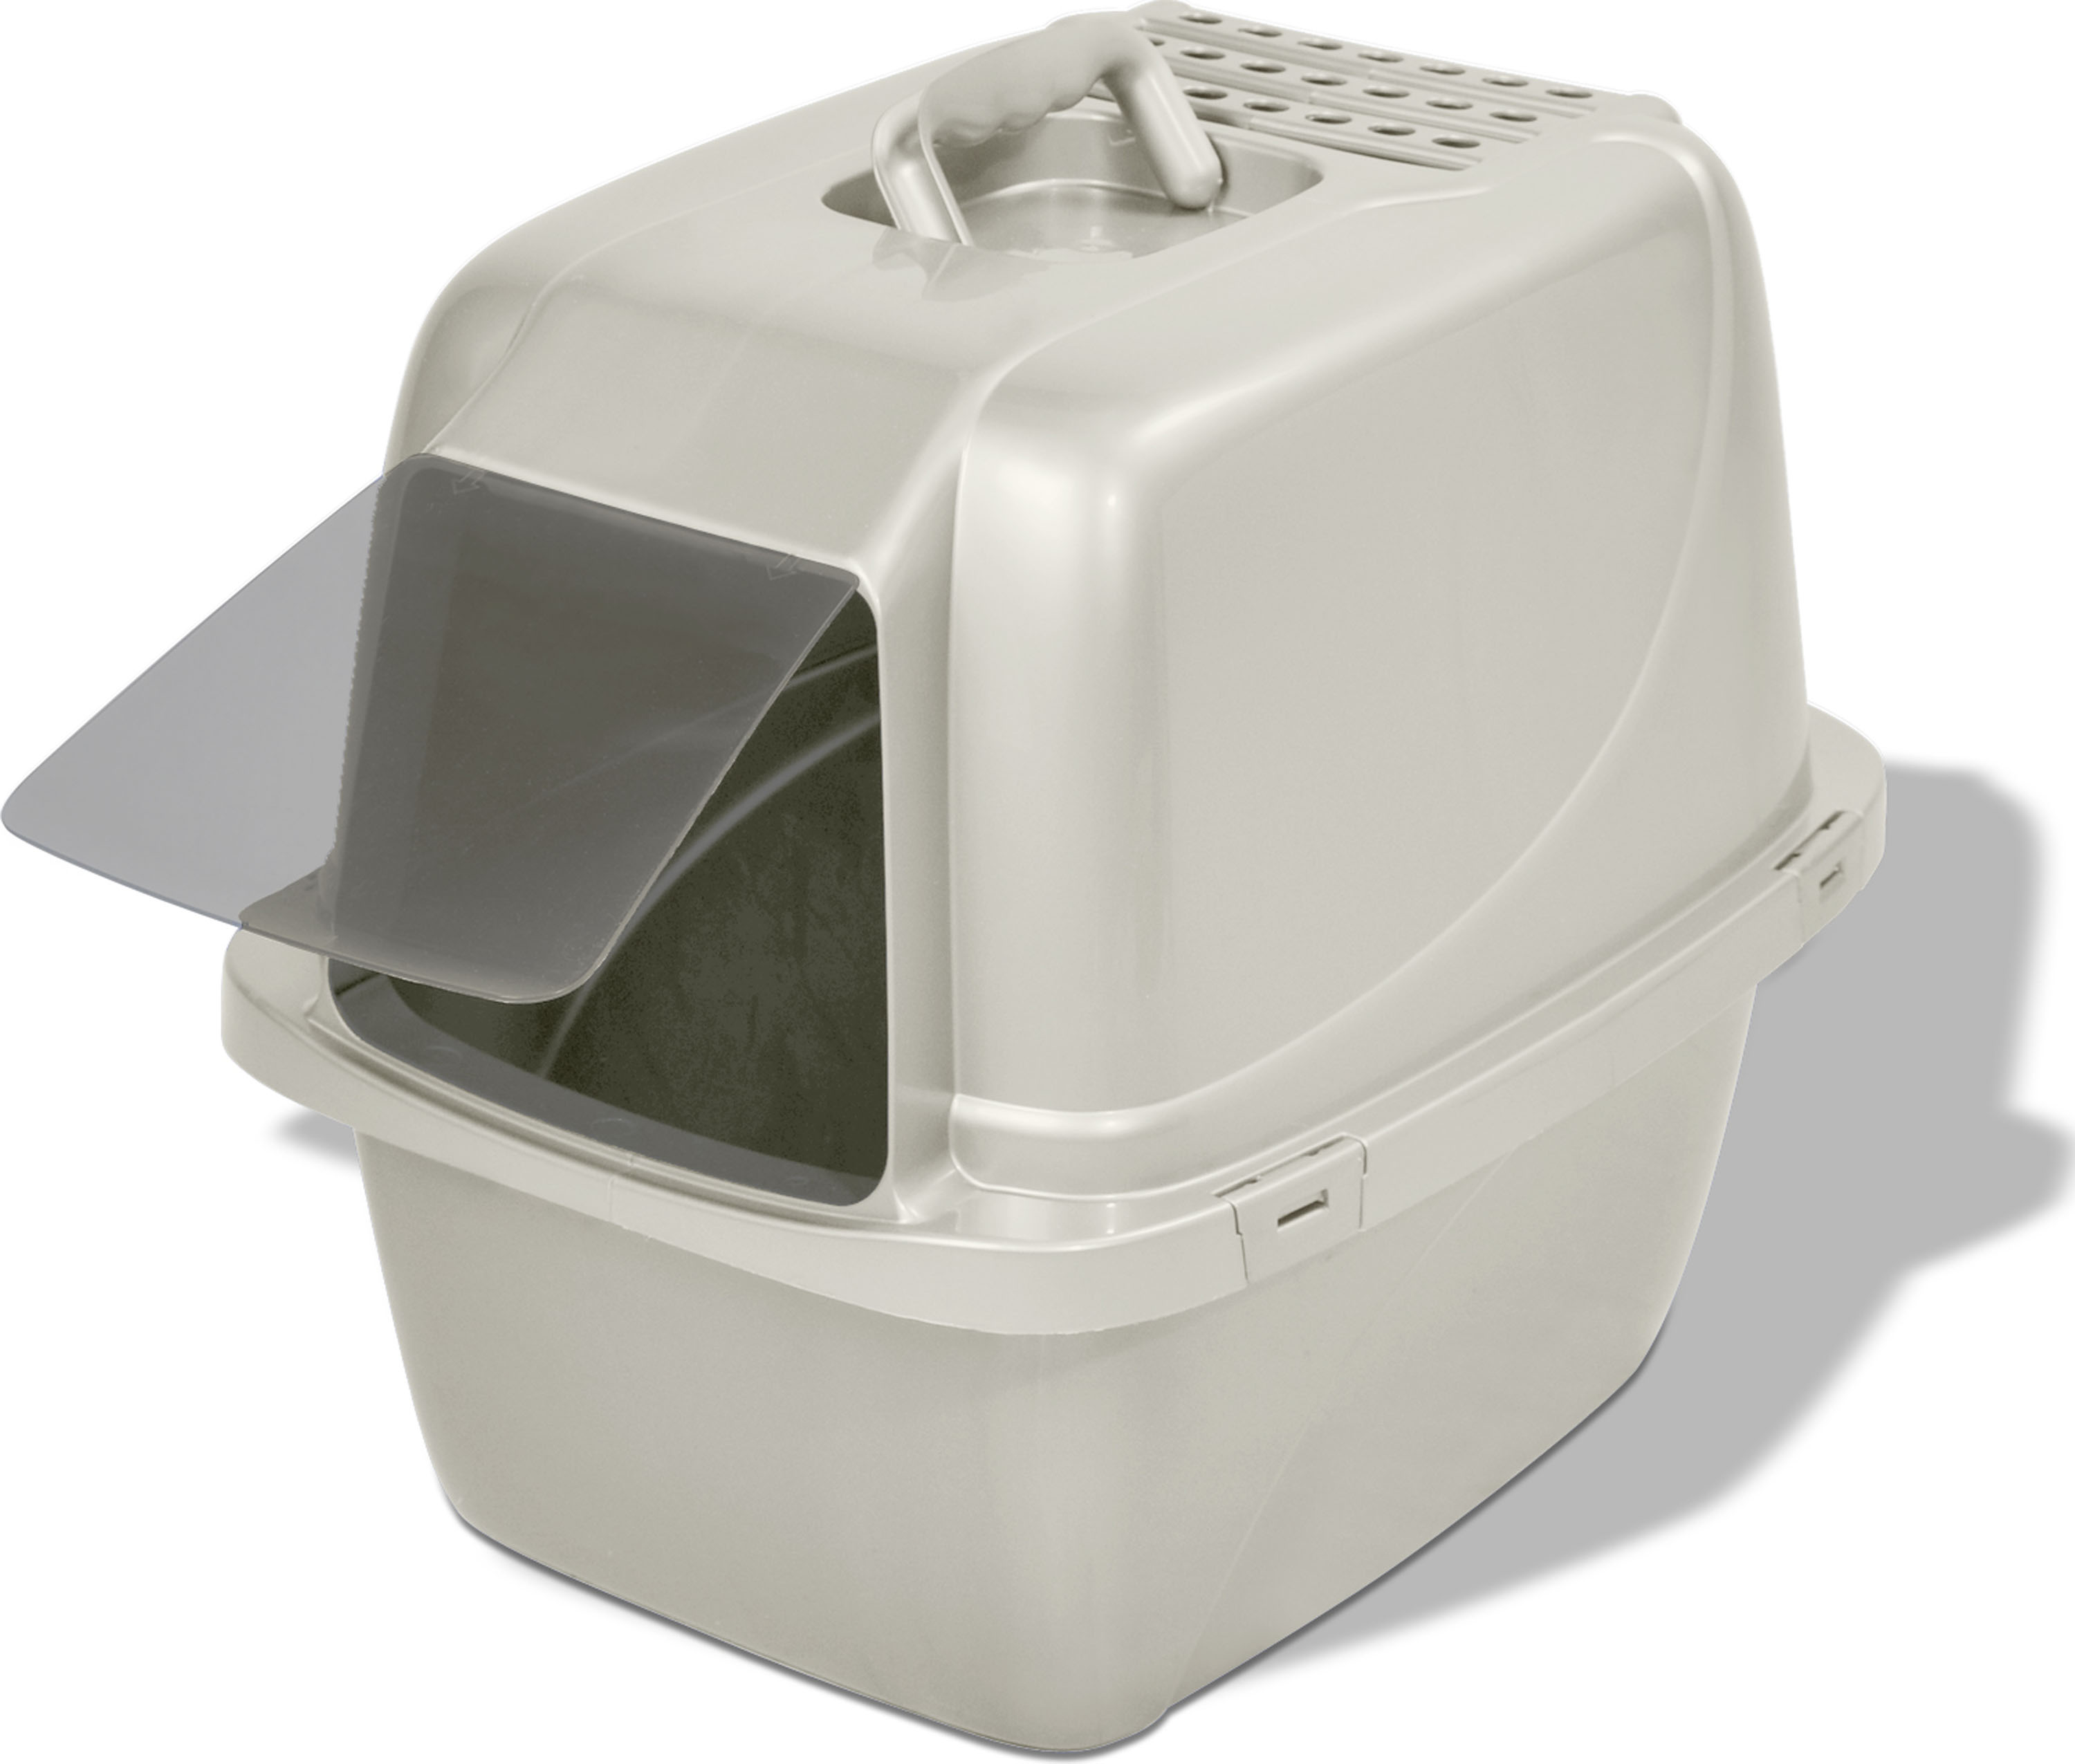 Van Ness Enclosed Cat Litter Box Image